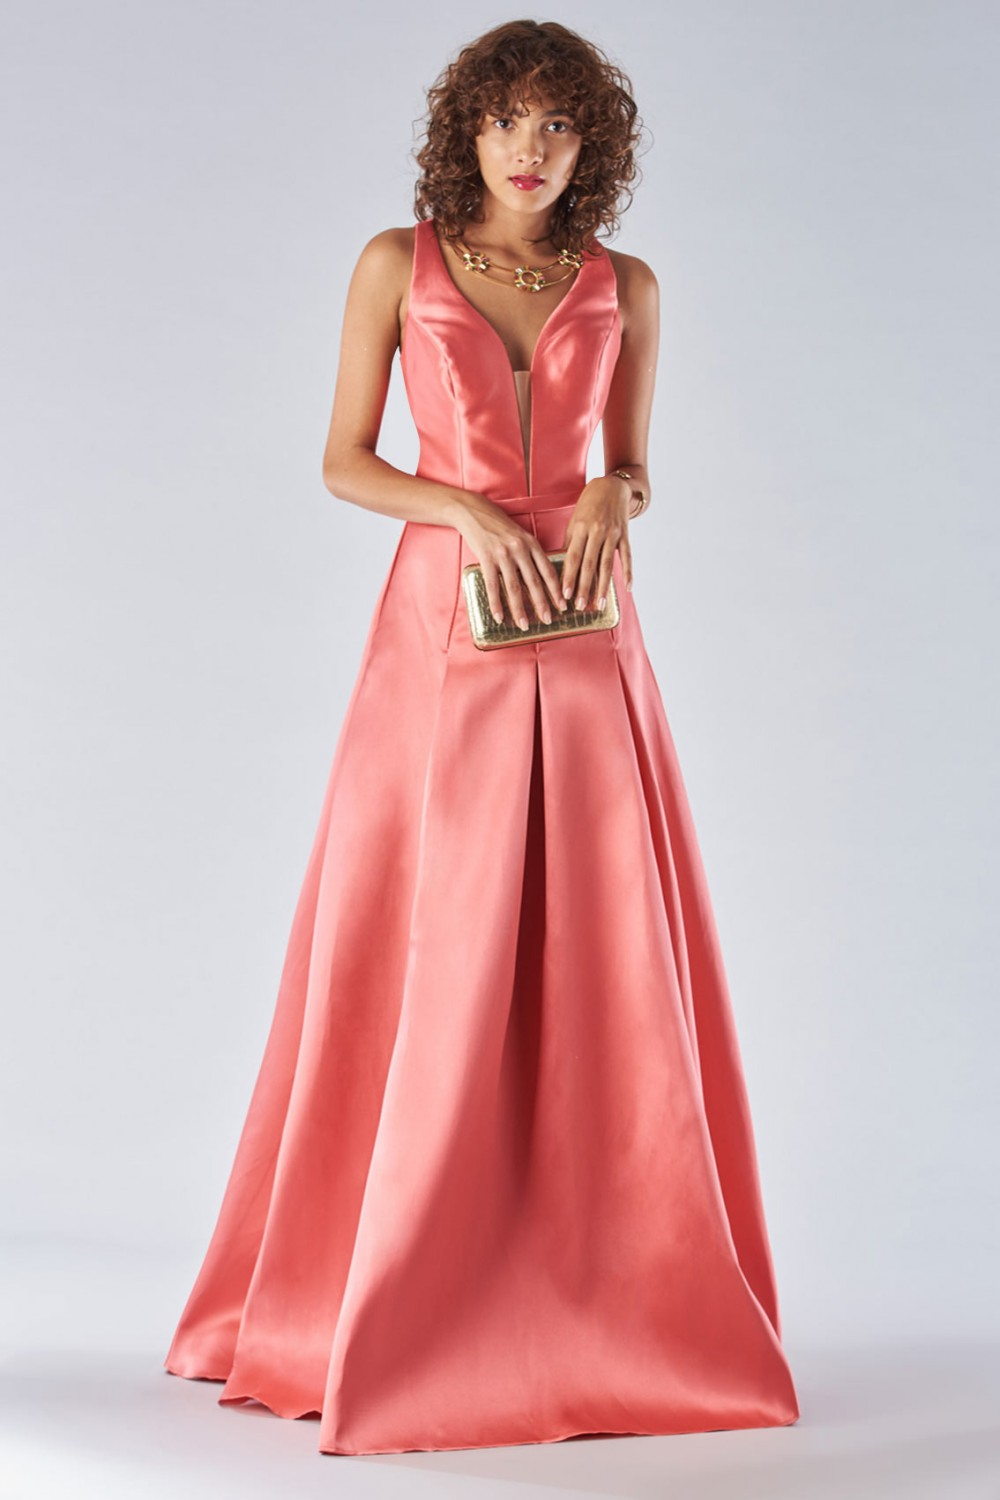 Satin dress with structured bodice